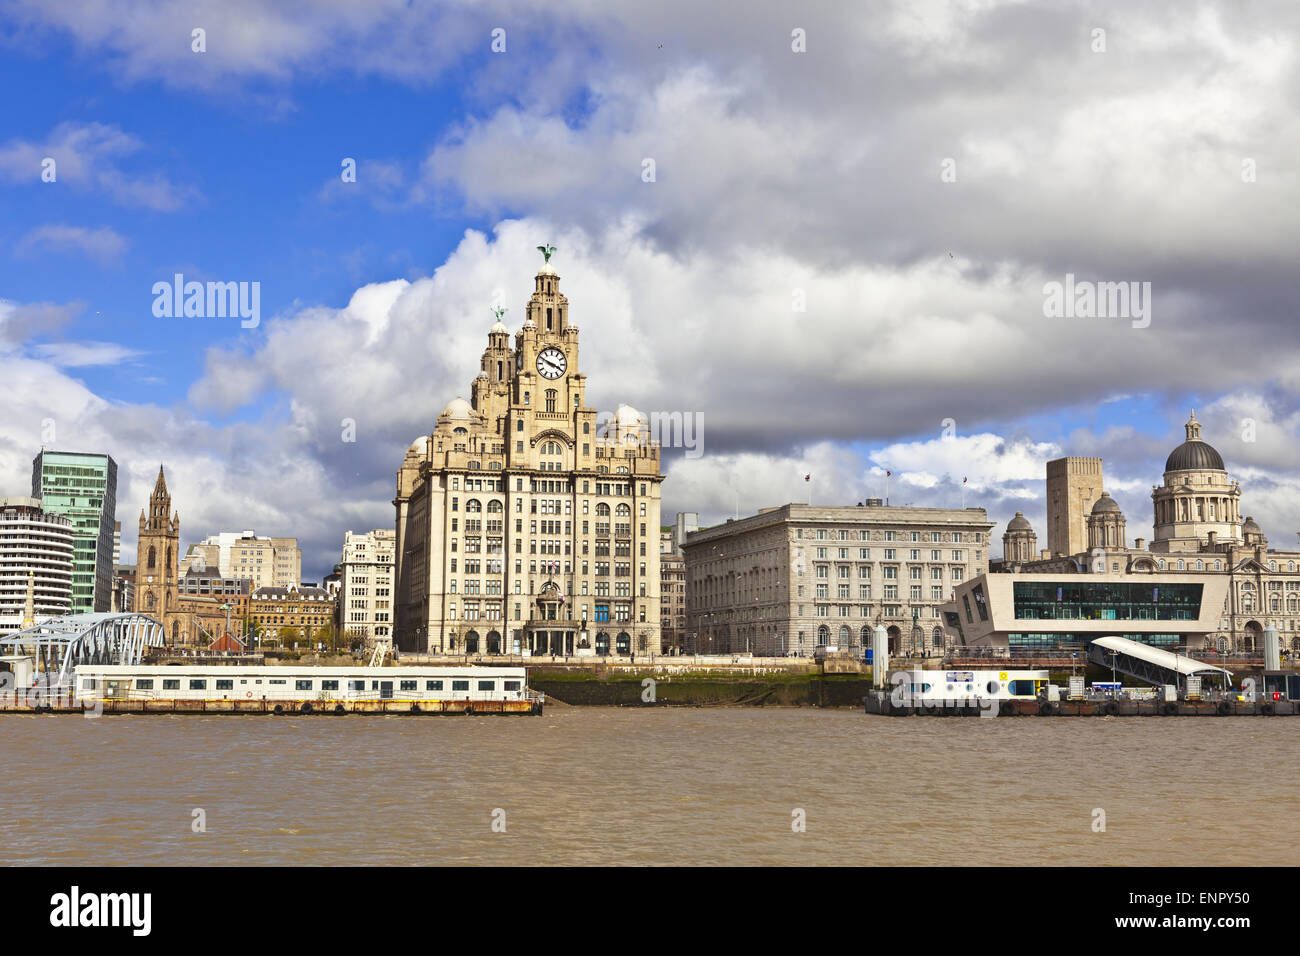 Cityscape at the Pier Head the city centre of Liverpool, Liverpool Maritime Mercantile City UNESCO World Heritage - Stock Image